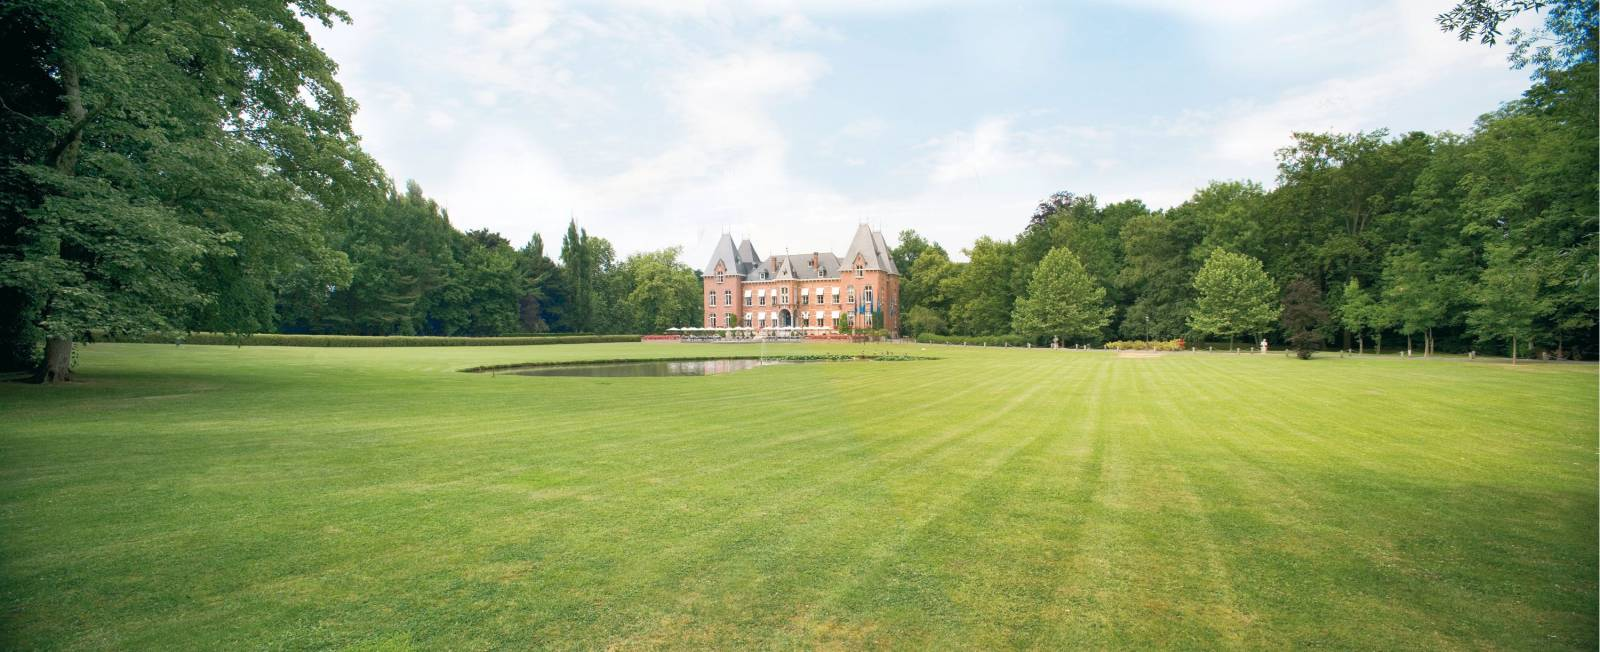 Kasteel Gravenhof - Feestzaal - House of Weddings  - 1